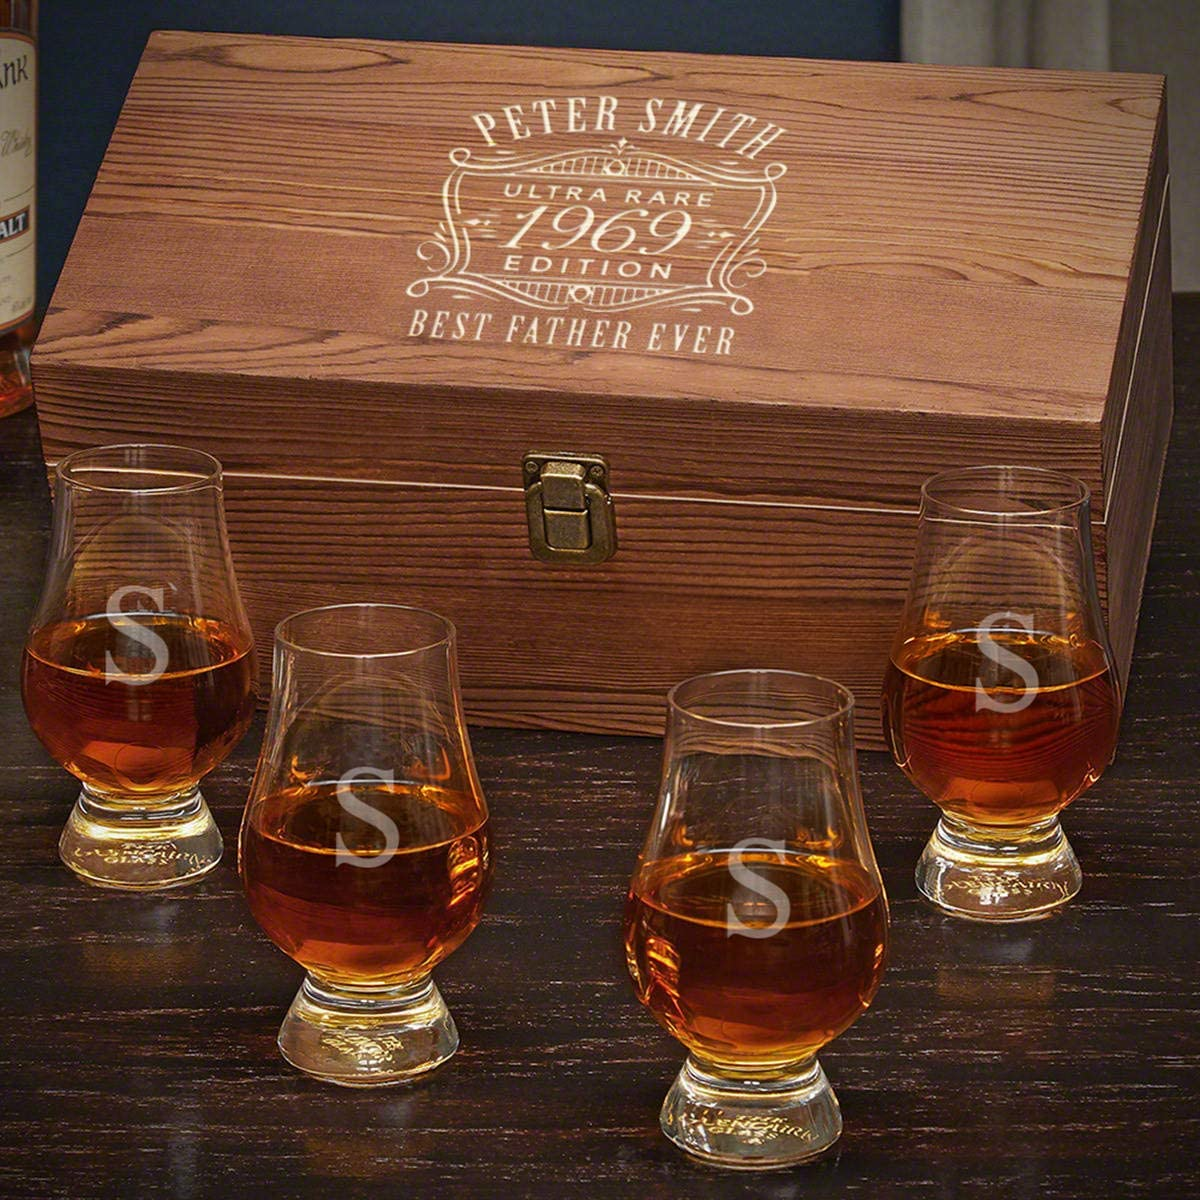 Ultra Rare Edition Engraved Glencairn Whiskey Glass Set (Personalized Product)